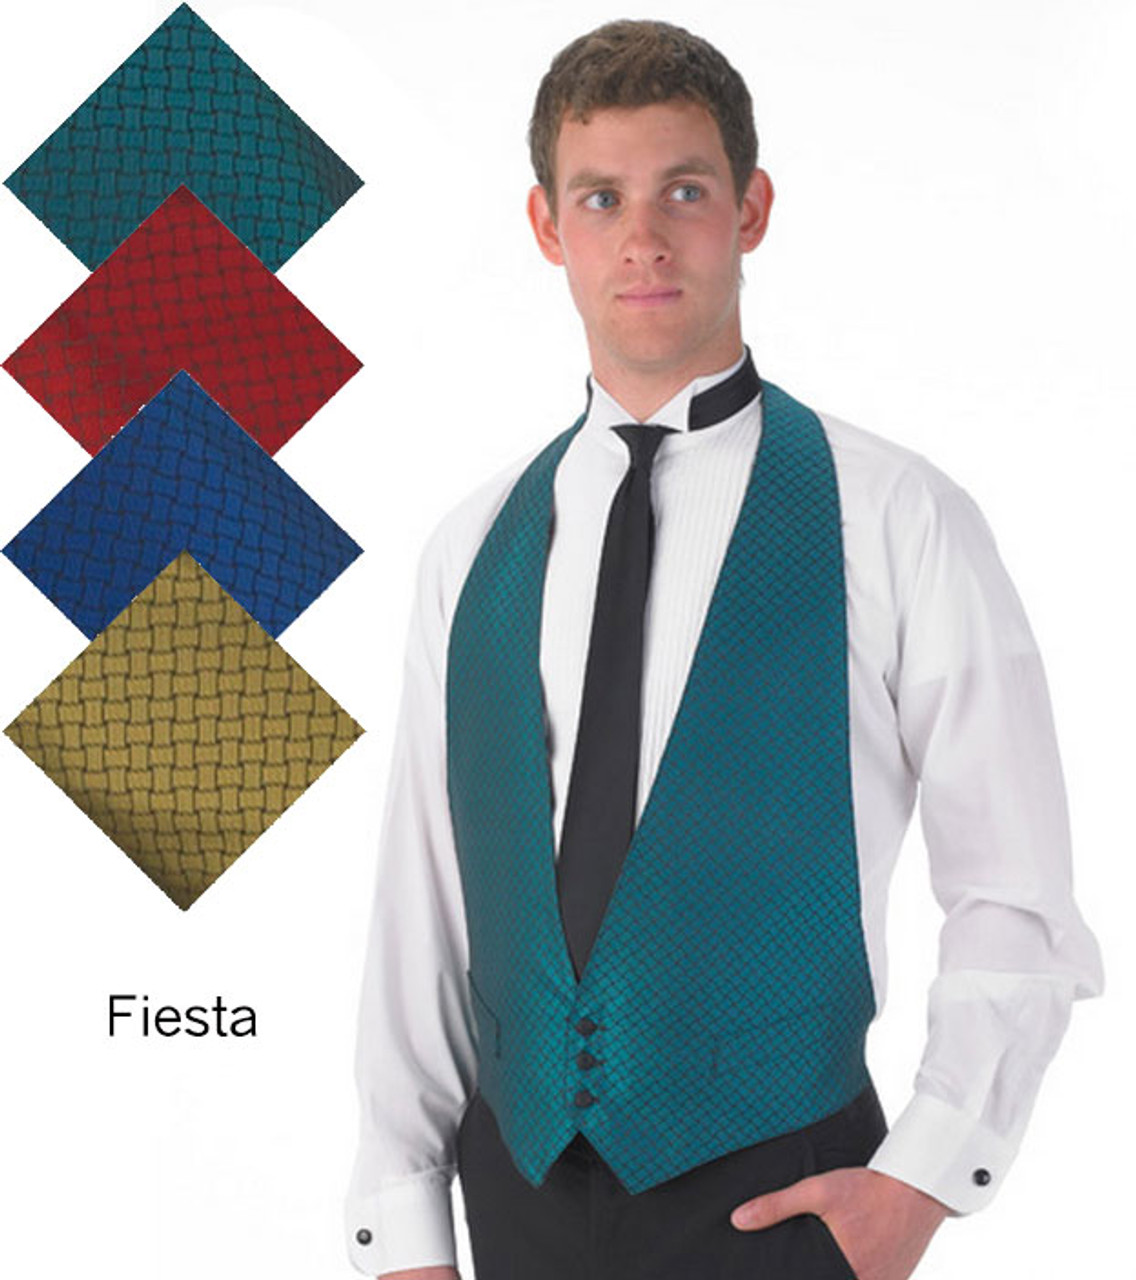 Available in many colors and patterns